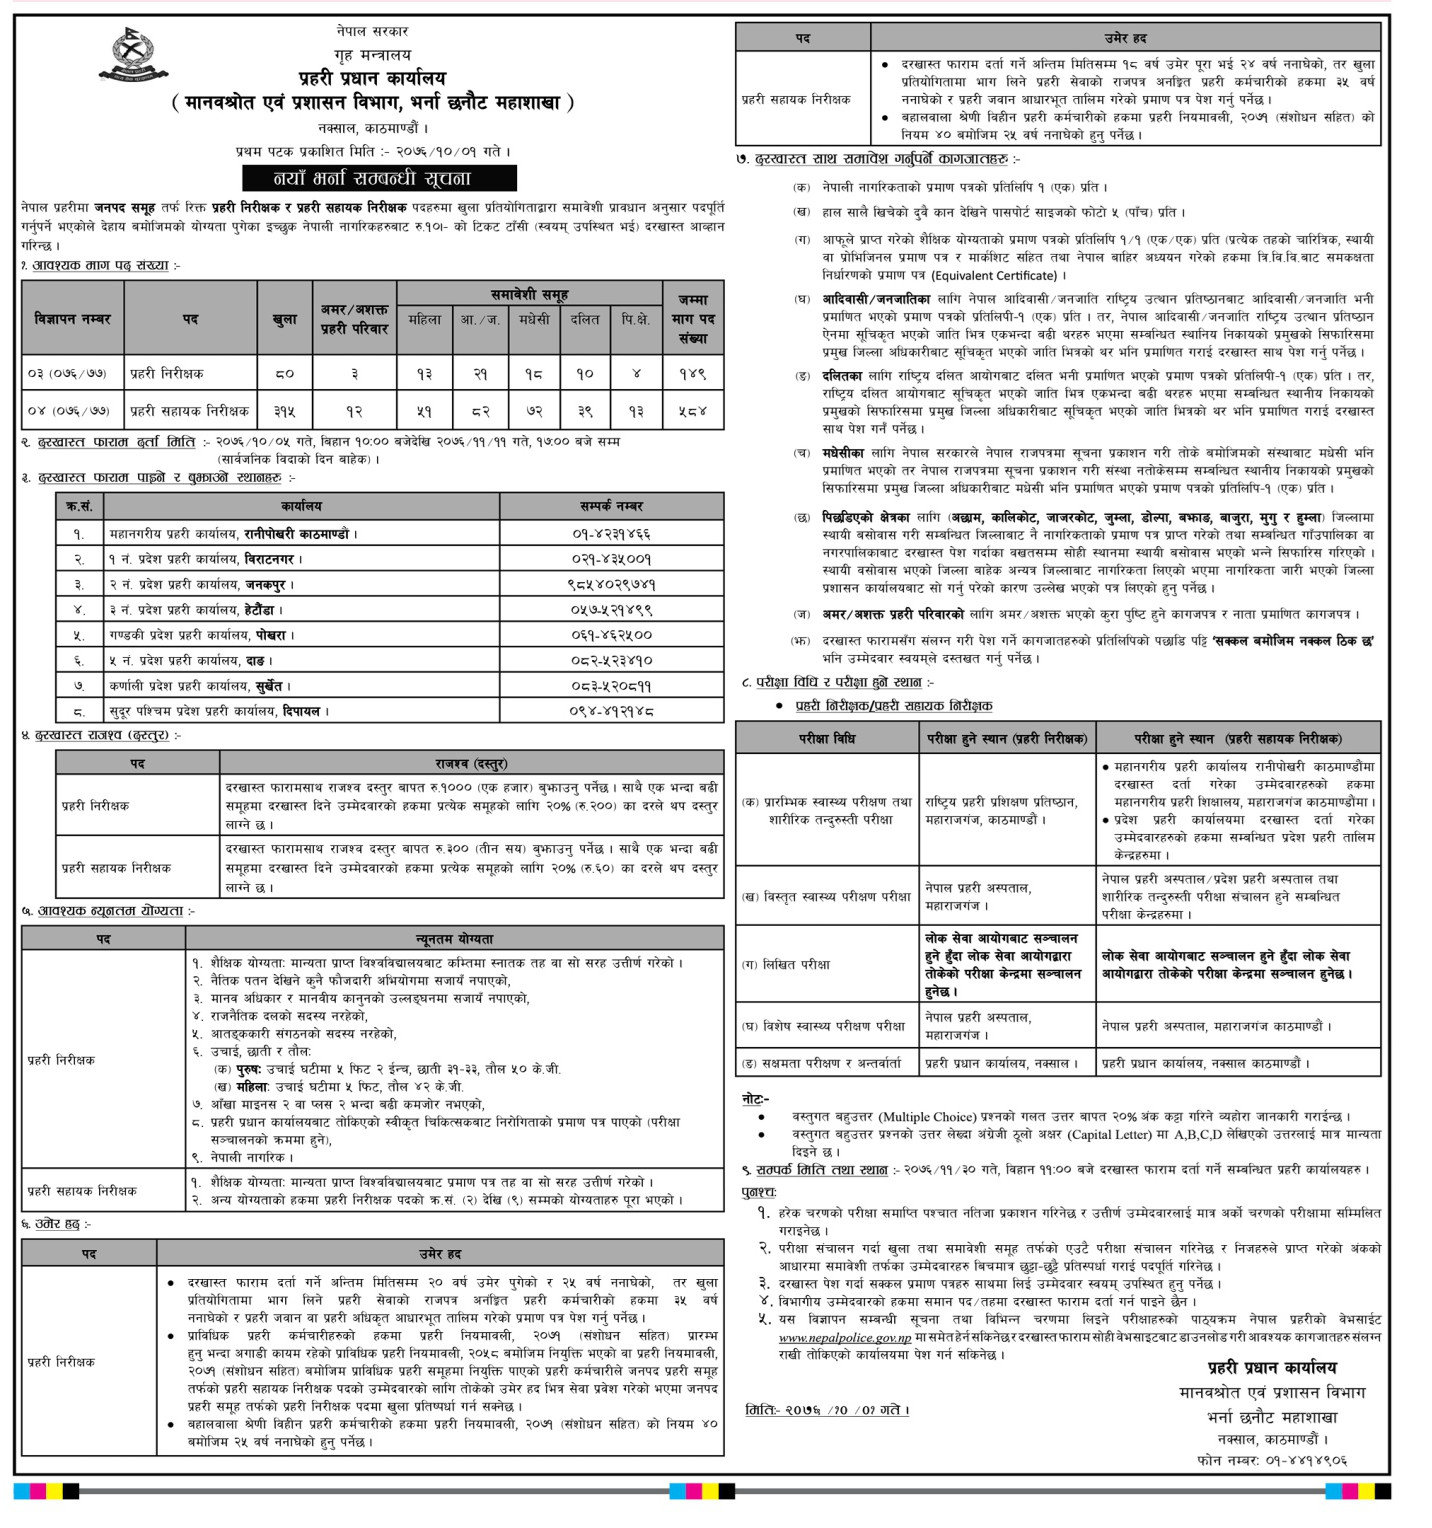 Nepal Police Announced Vacancies For Police Inspector and Sub-Inspector